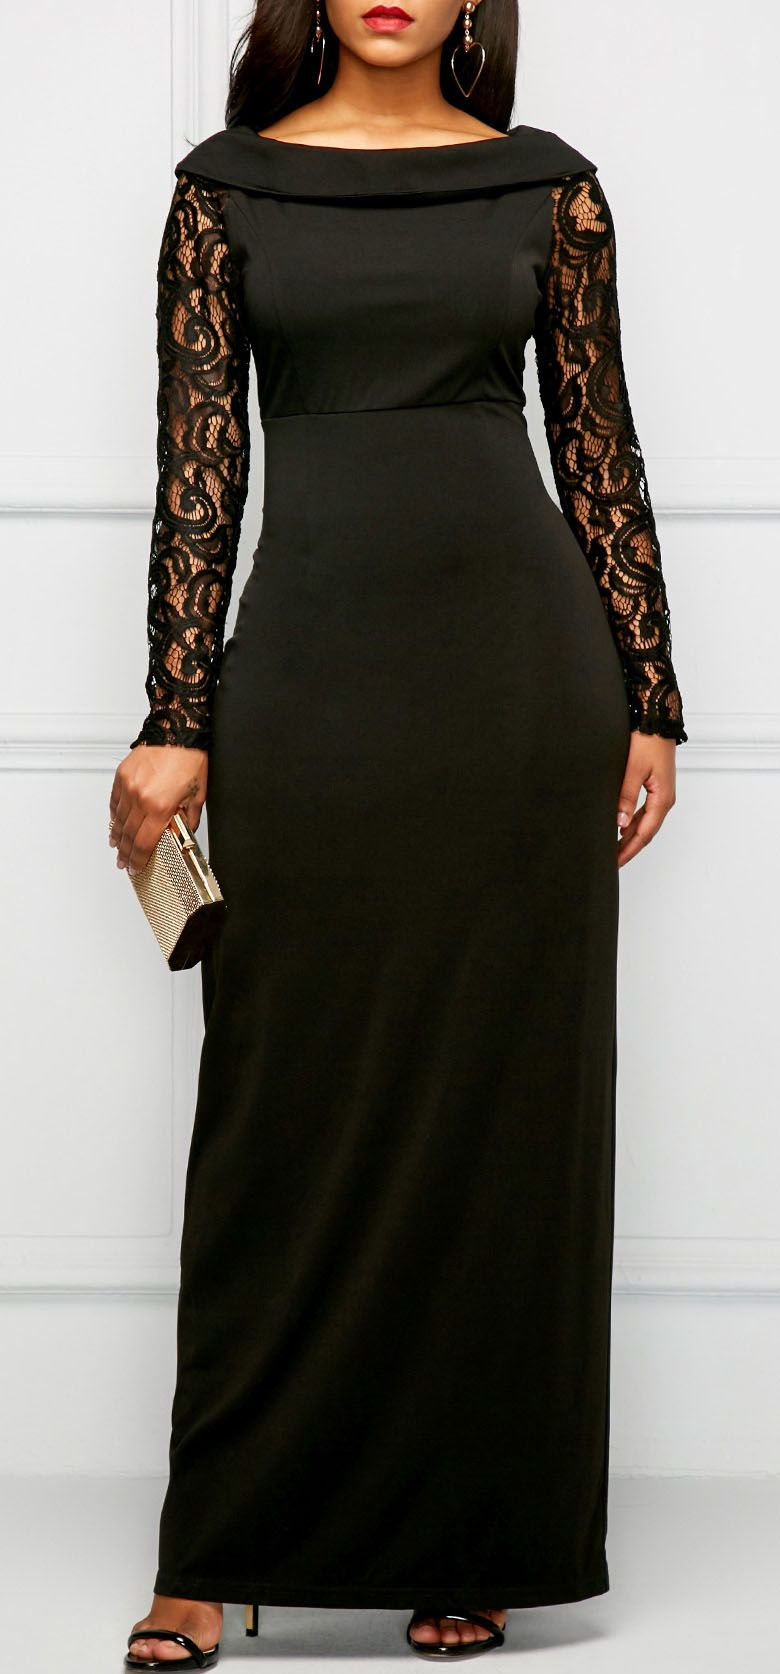 Lace panel black back slit maxi dress fatou diallo pinterest